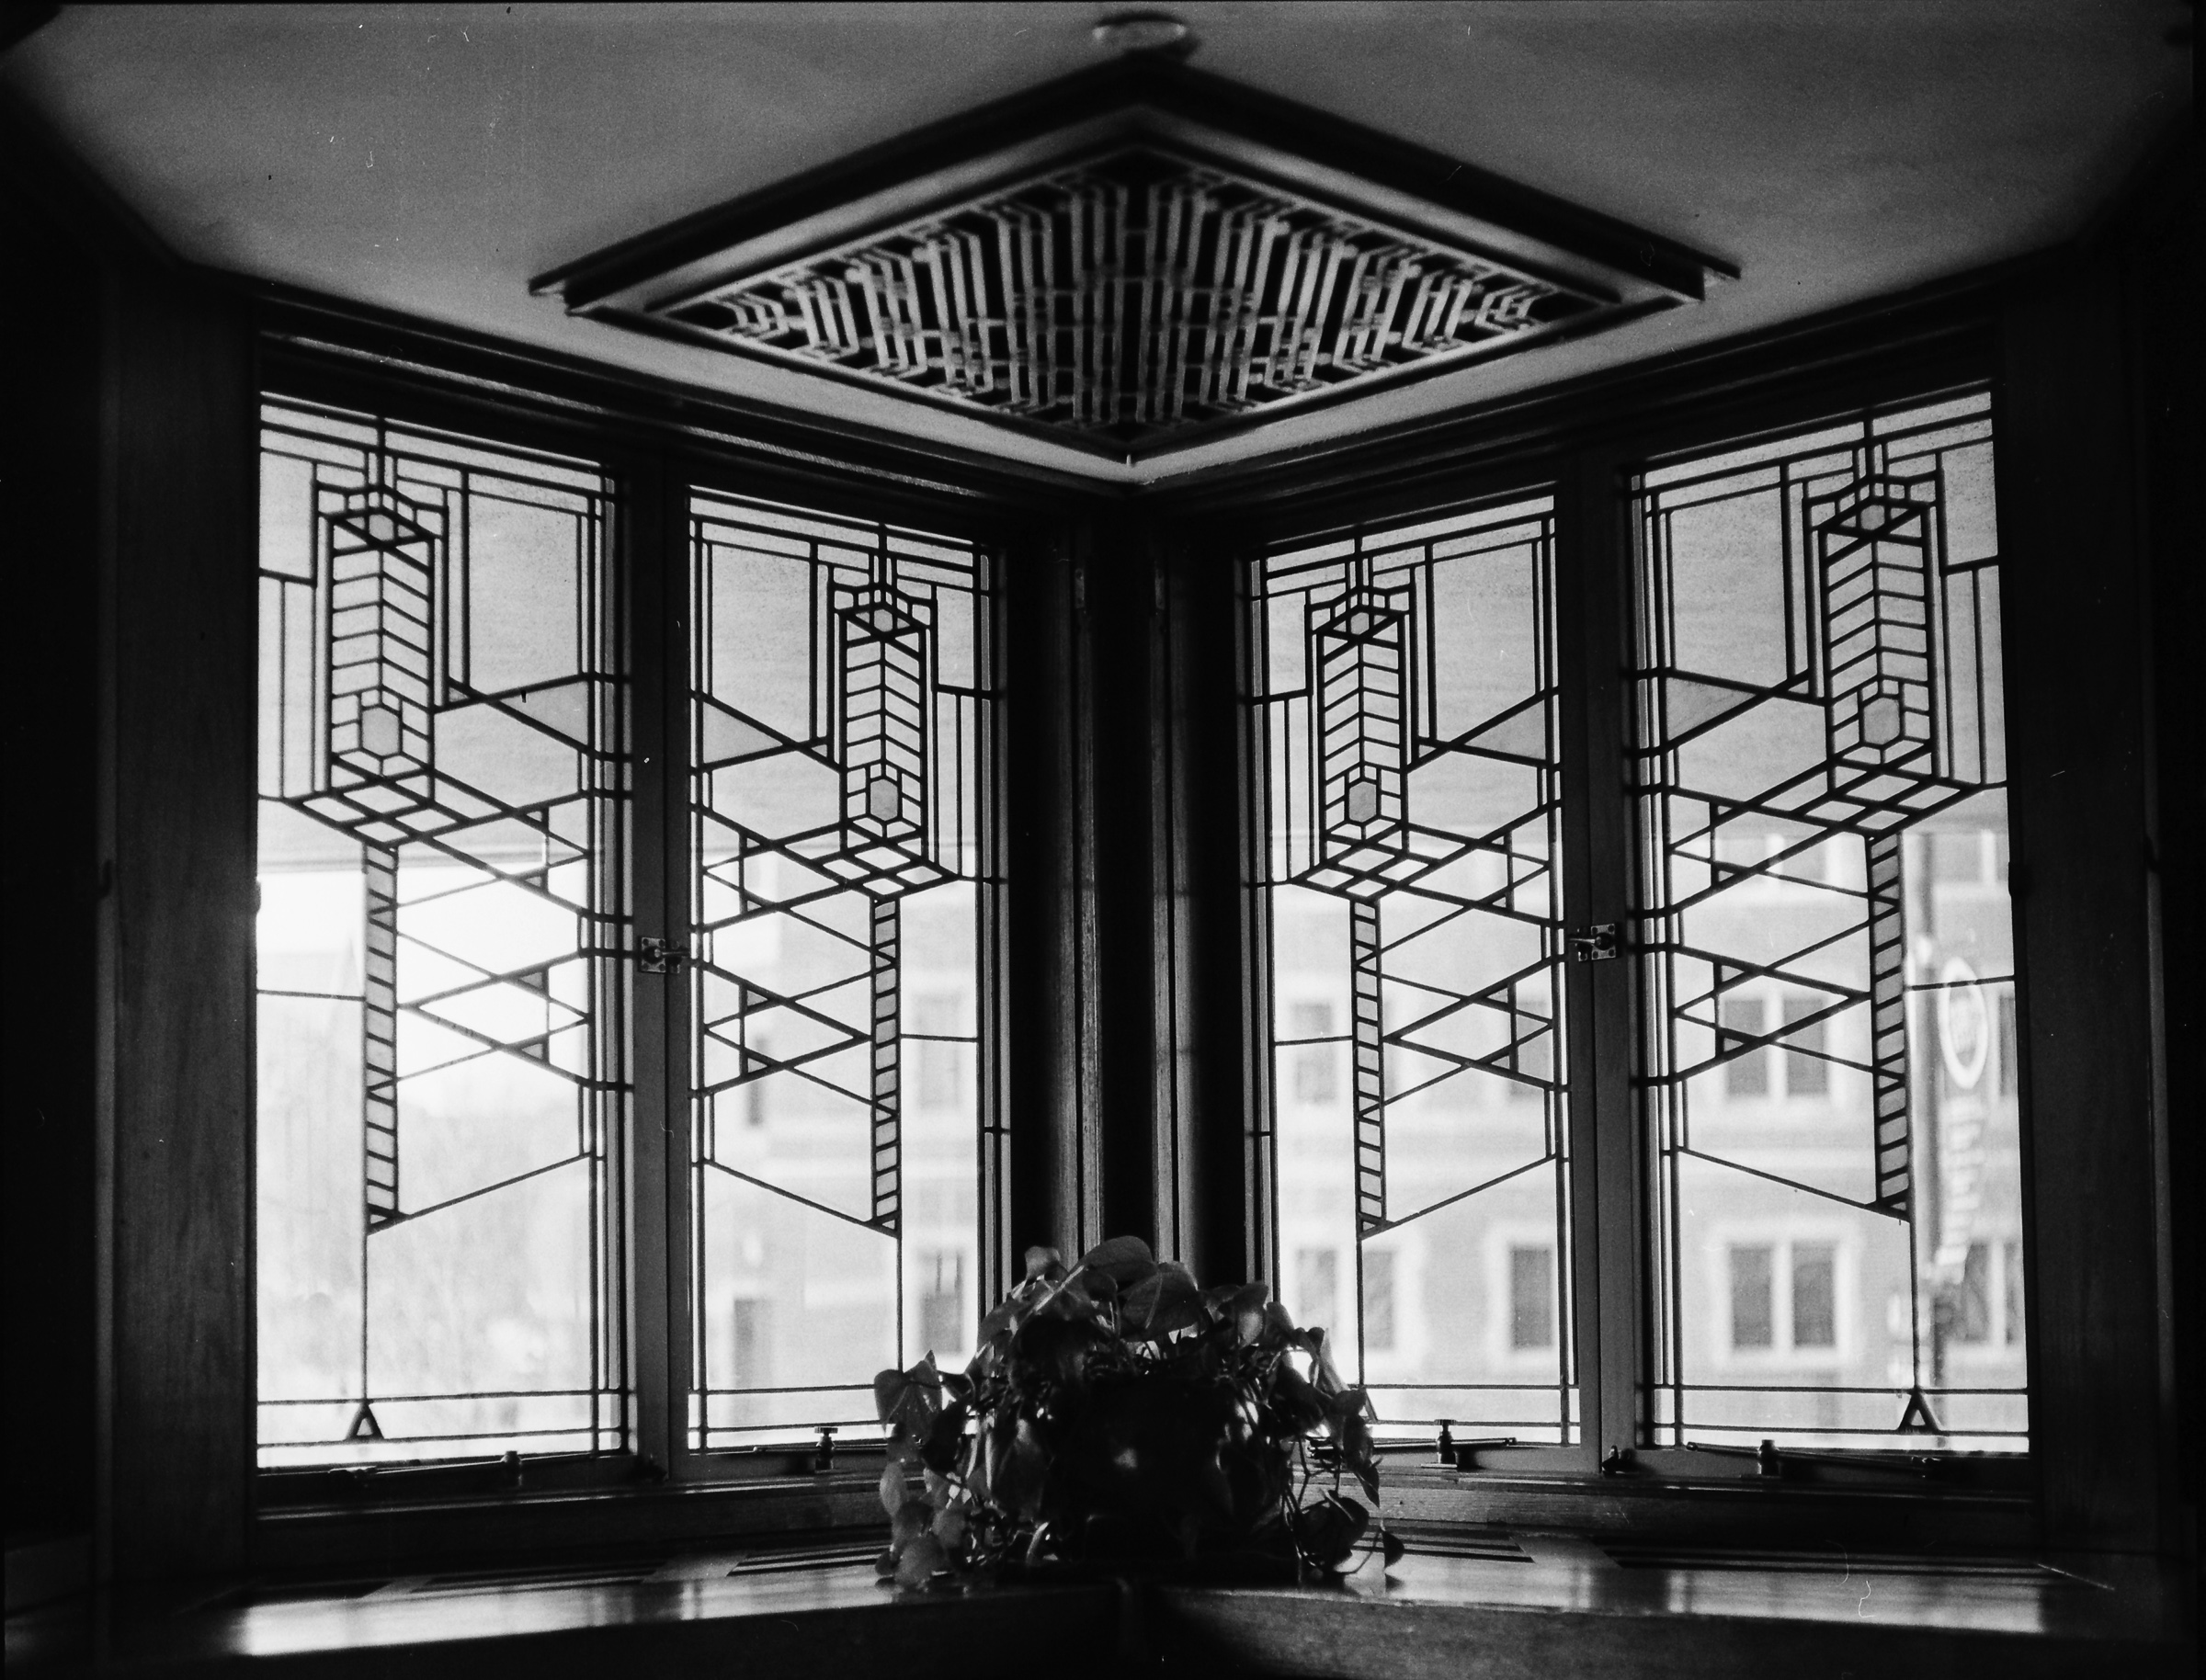 Art Glass.  The Frank Lloyd Wright Robie House. Chicago, IL. Kodak Tri-X 400 pushed to 800. Stand developed in Rodinal.